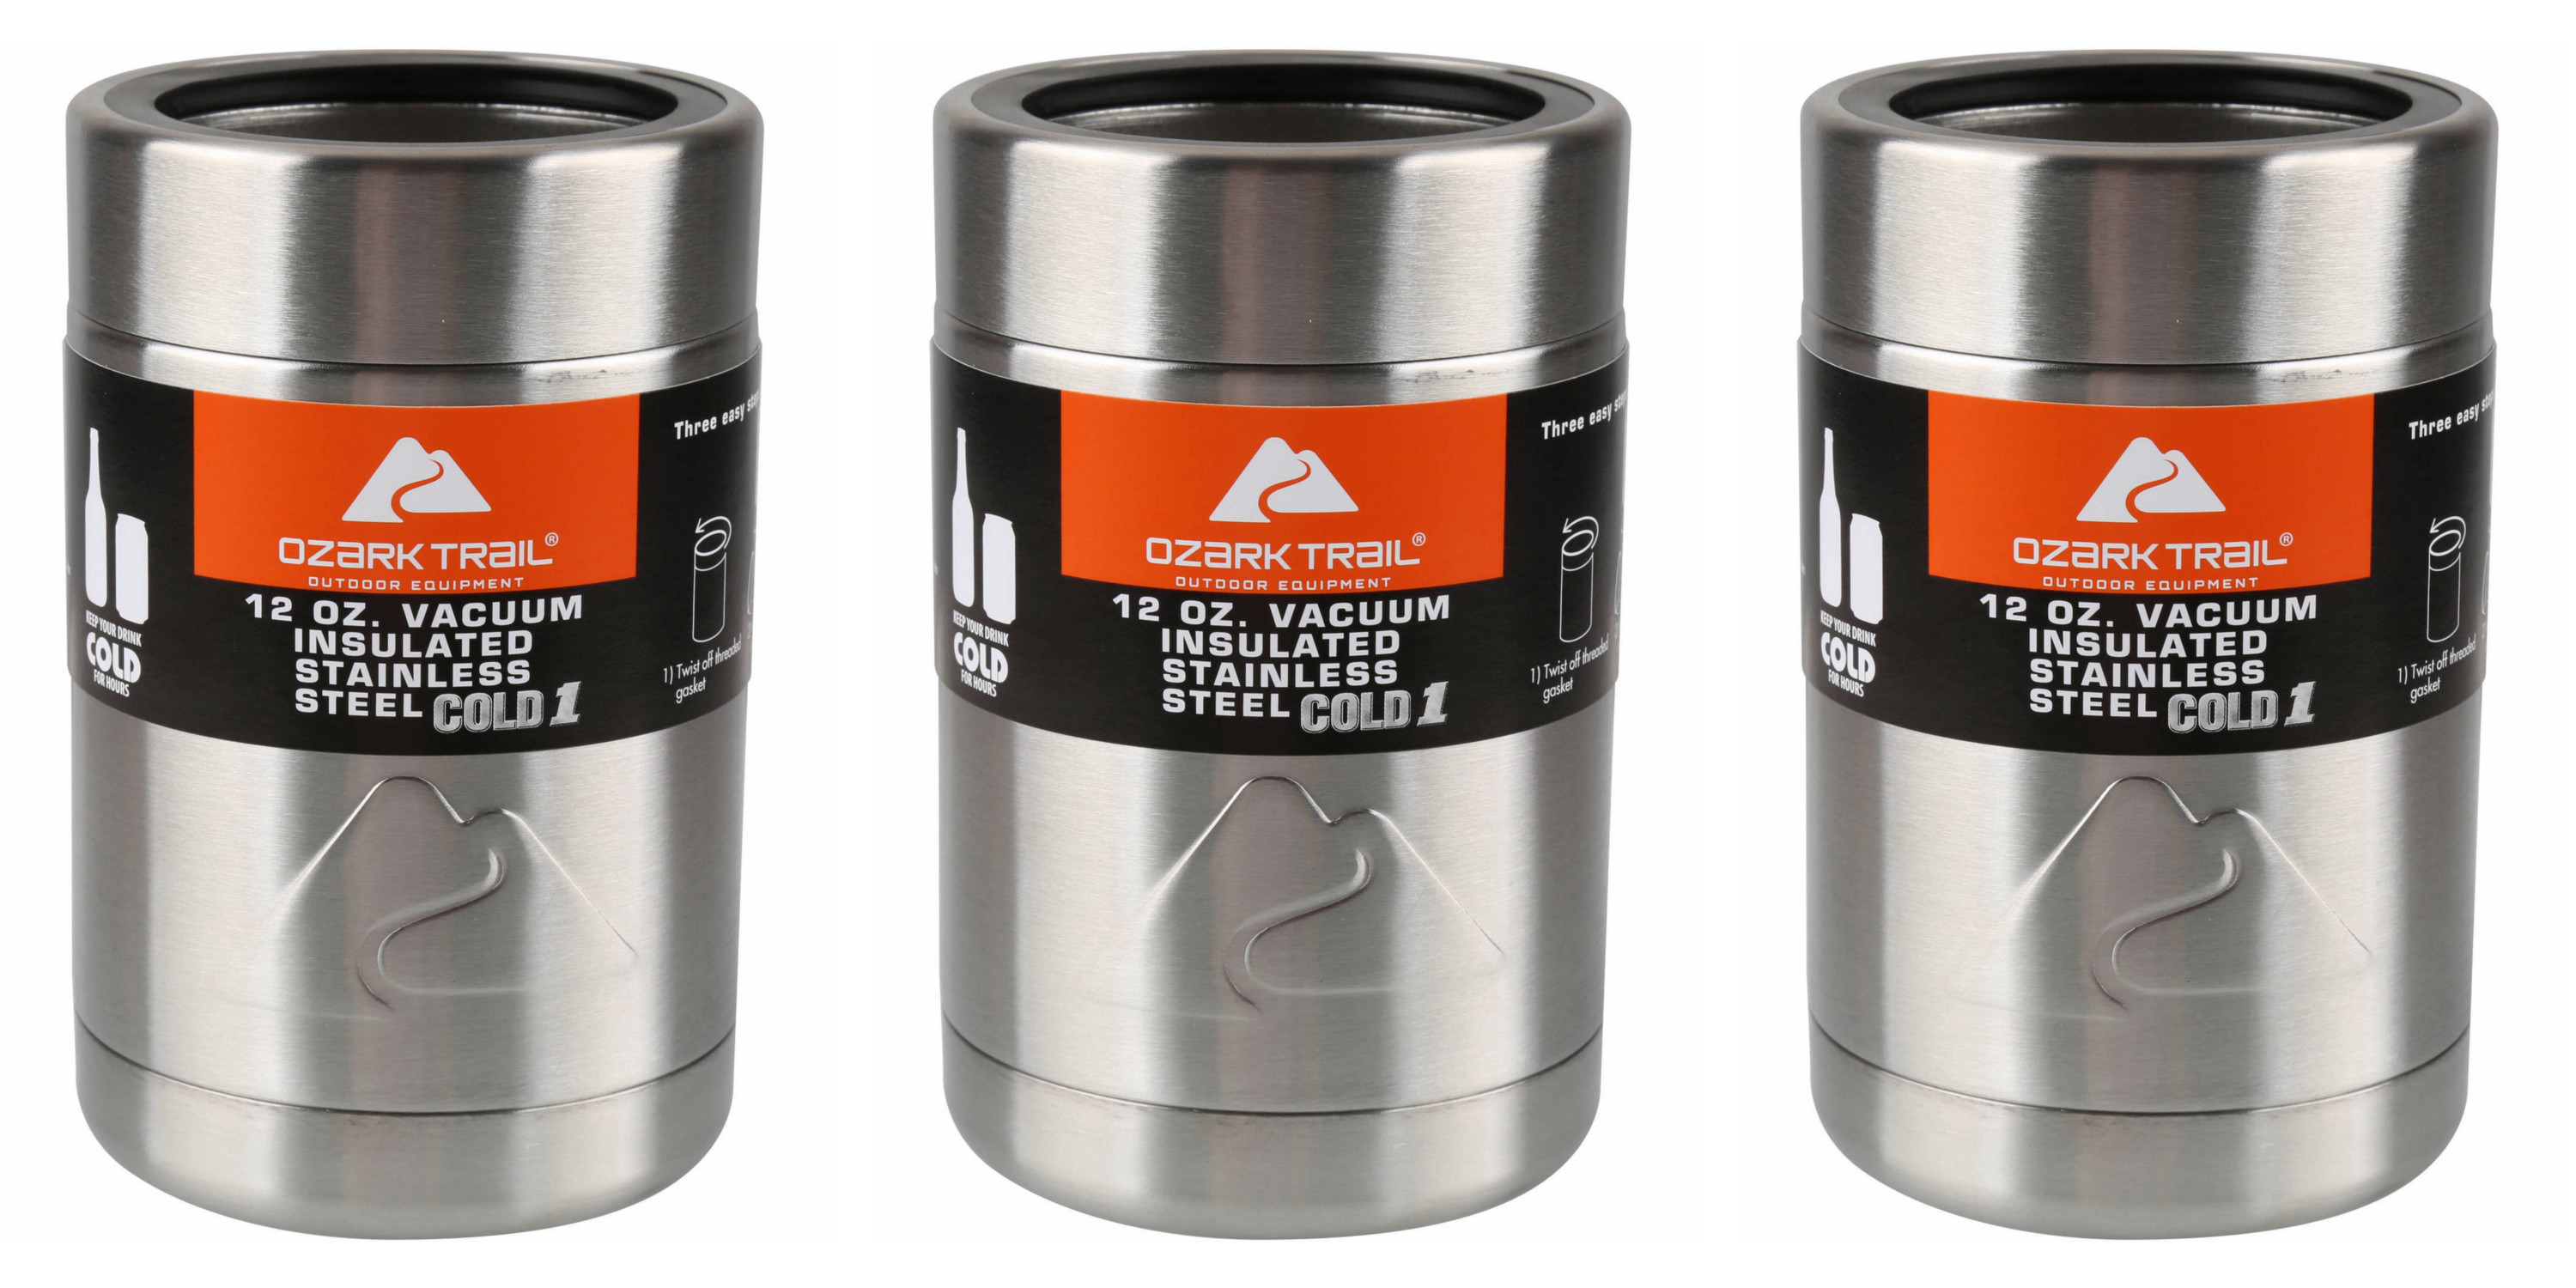 9bce5eab6fe Ozark Trail 12-Oz. Stainless Vacuum Insulated Can Coolers from under $3  (Reg. $7+) - 9to5Toys